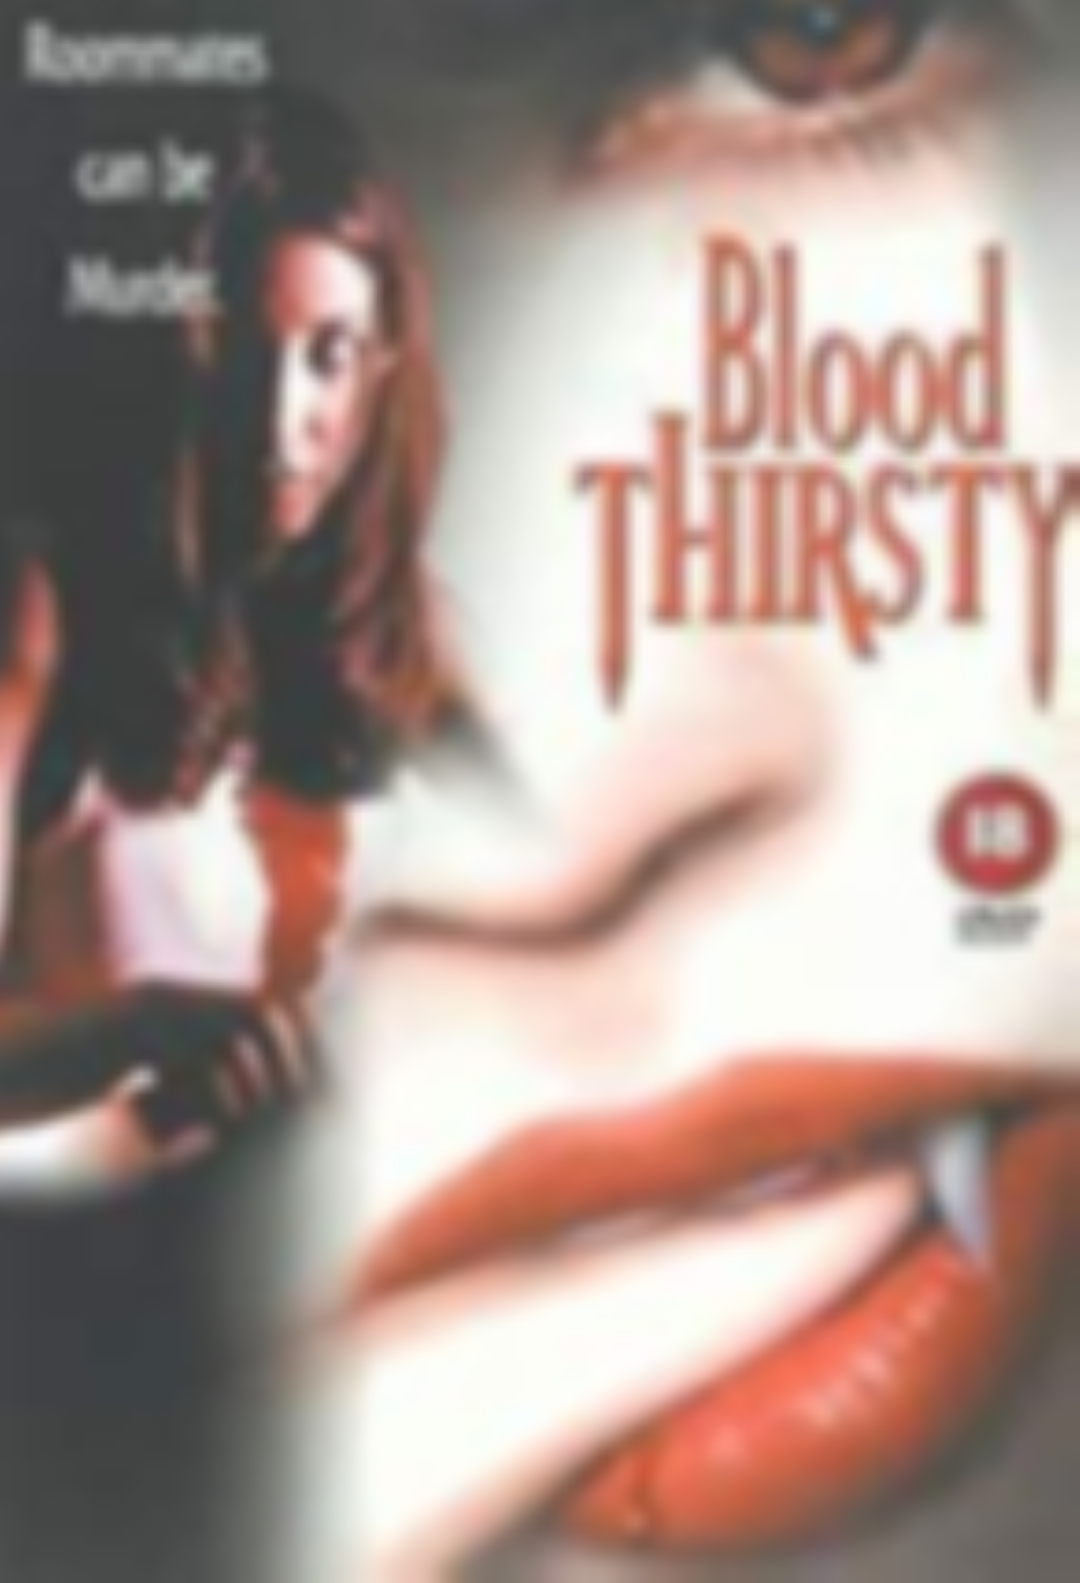 Blood Thirsty Vhs